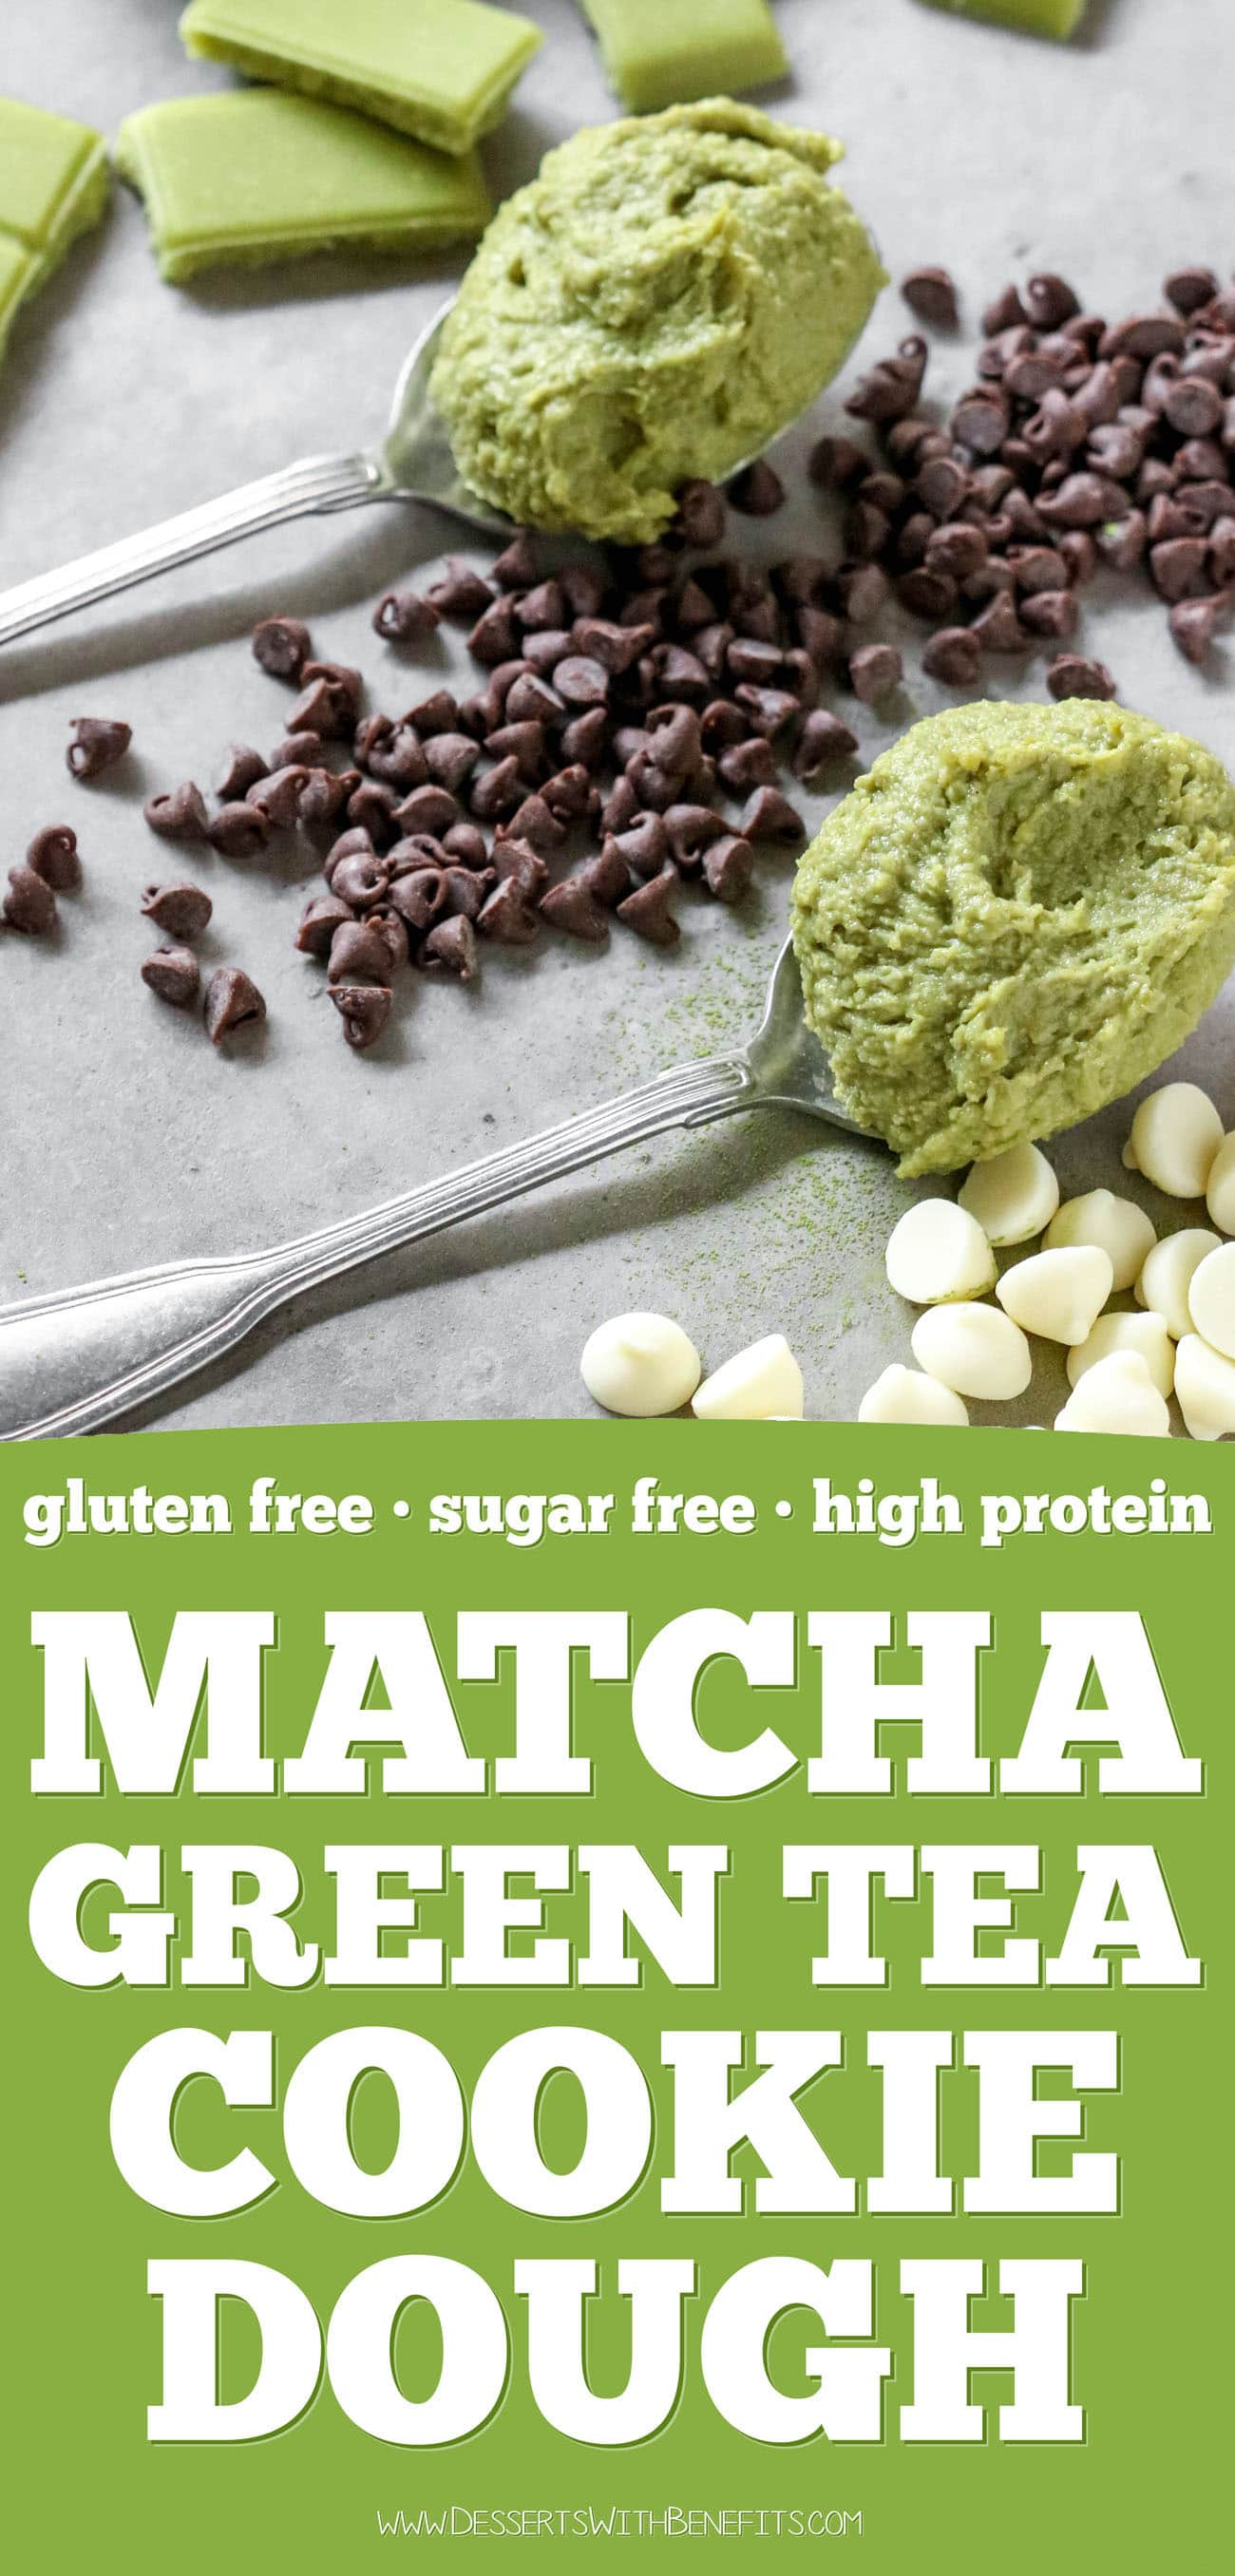 This Matcha Cookie Dough is fudgy, sweet, and sinful-tasting, yet it's healthy! Made with nut butter, oats, protein powder (optional), and a secret ingredient. You'd never know this is sugar free, gluten free, high protein, and high fiber too!